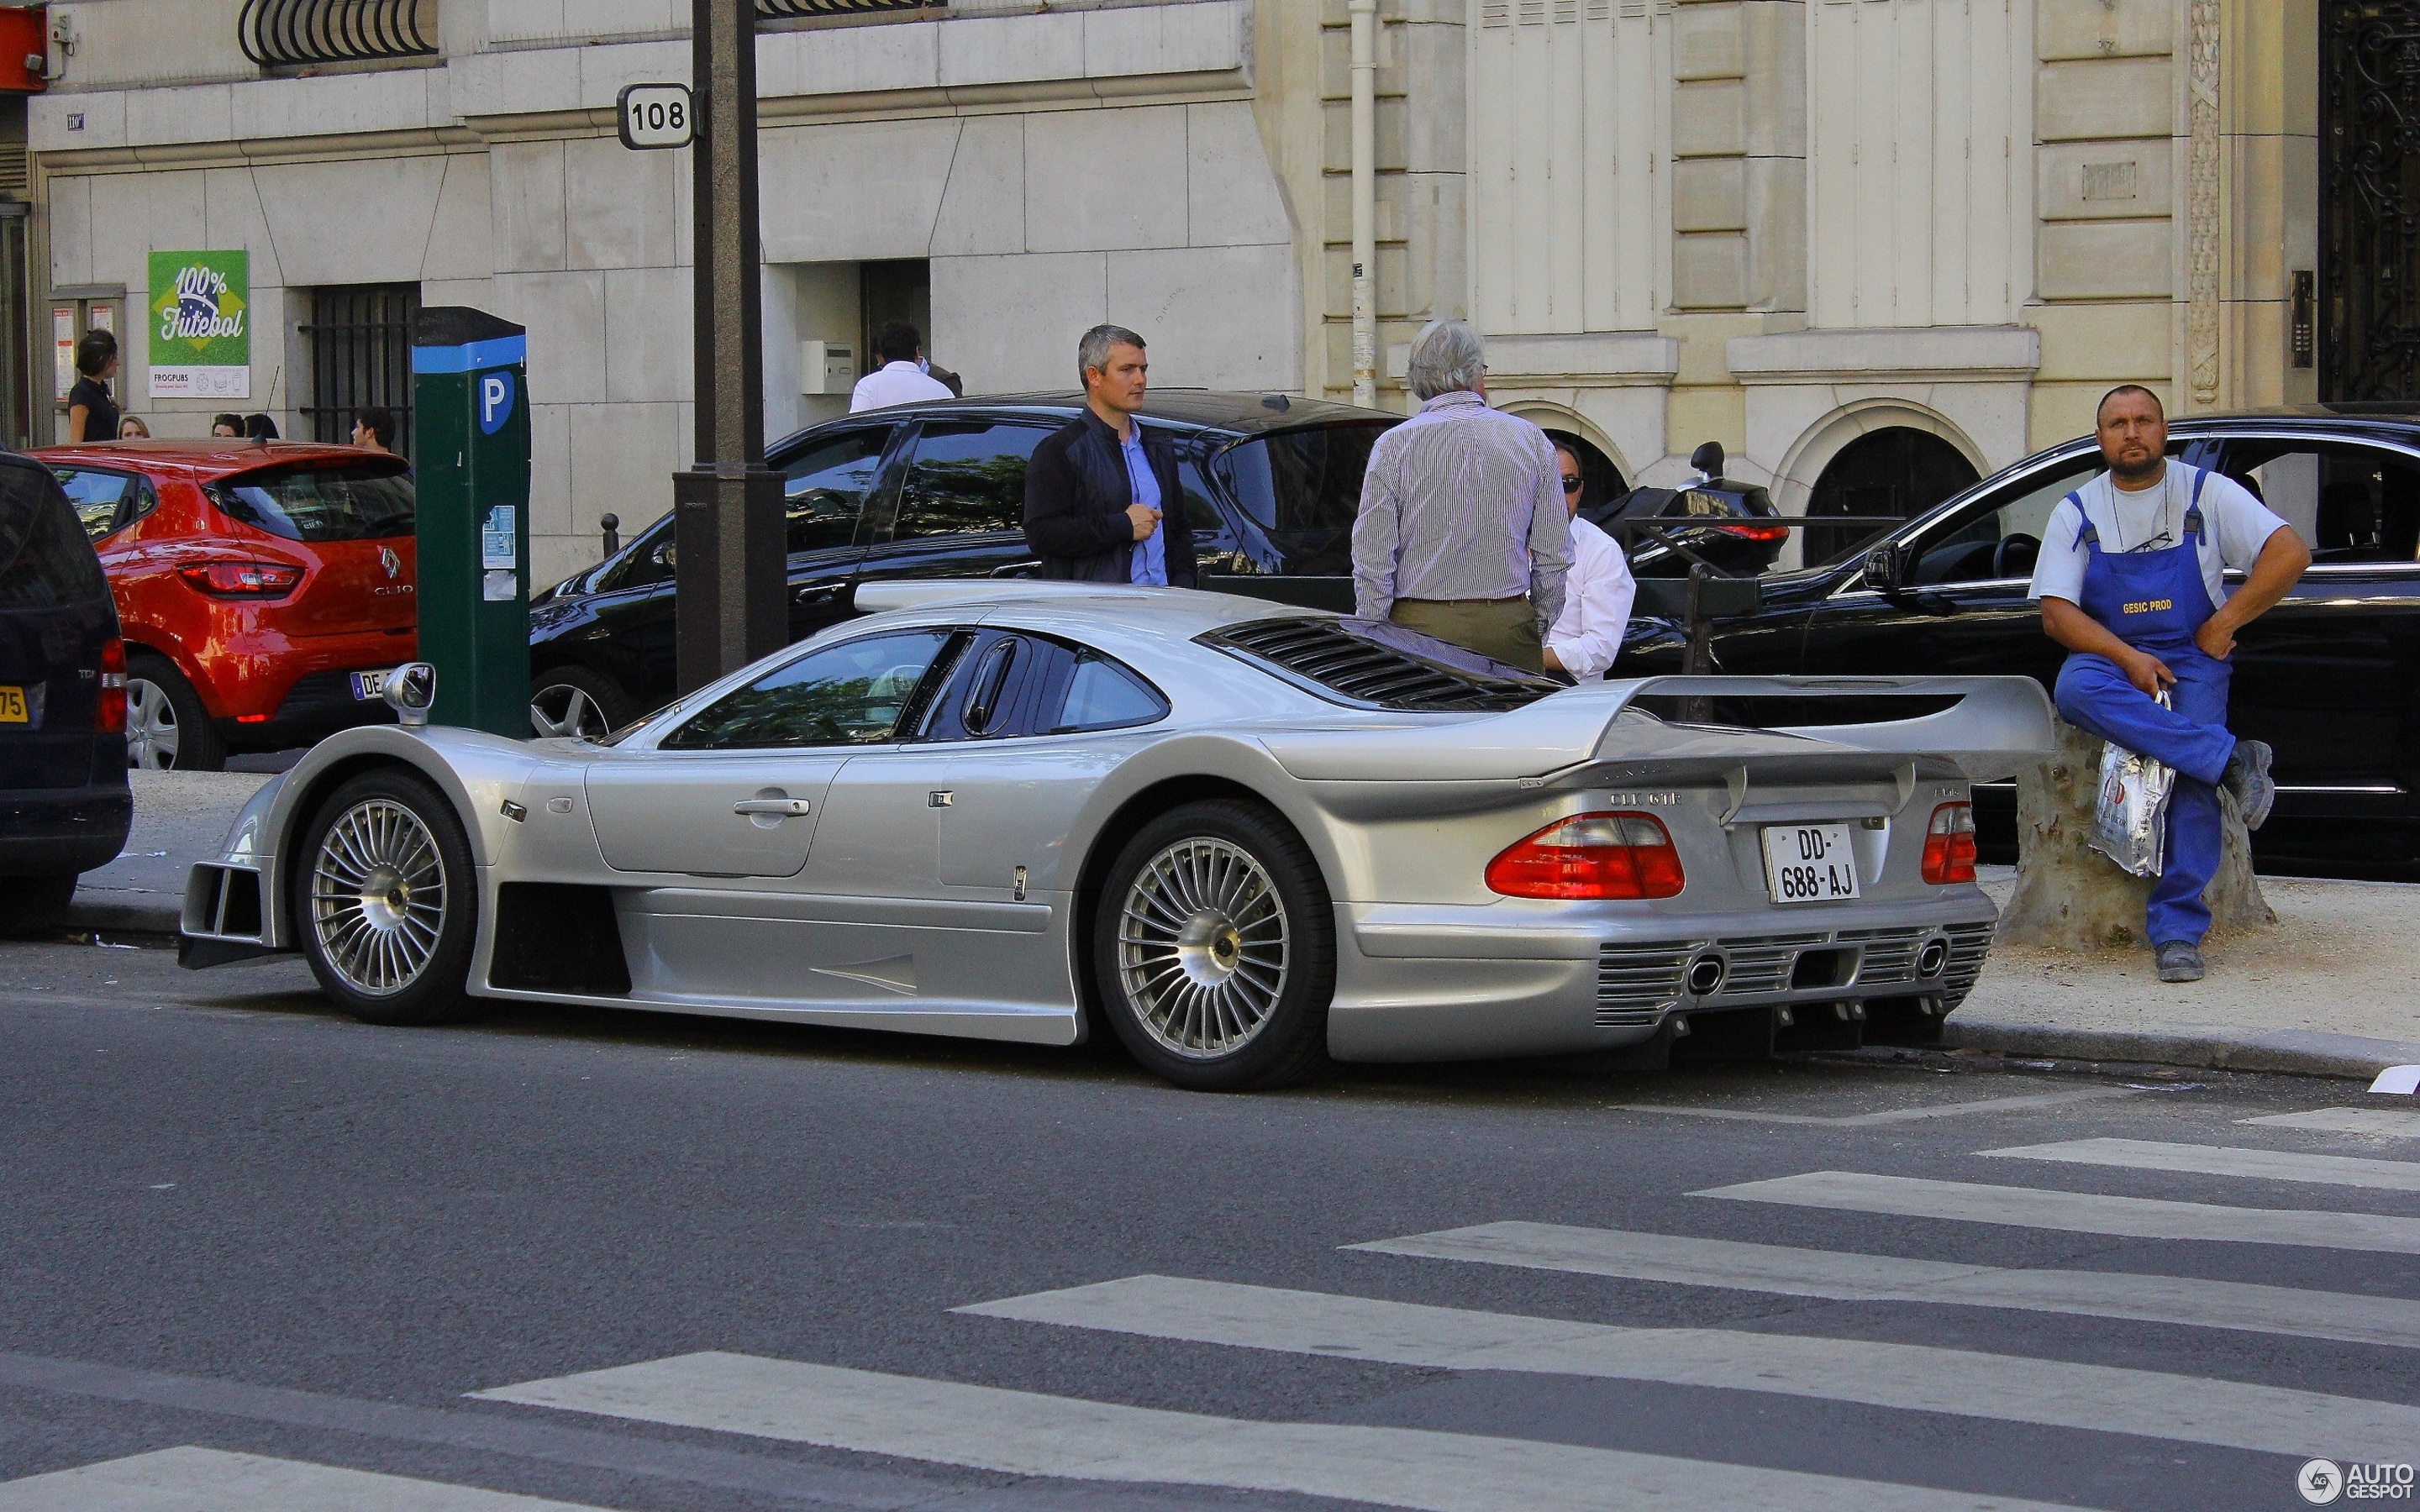 Mercedes Benz Clk Gtr >> Mercedes Benz Clk Gtr Amg 2 July 2014 Autogespot